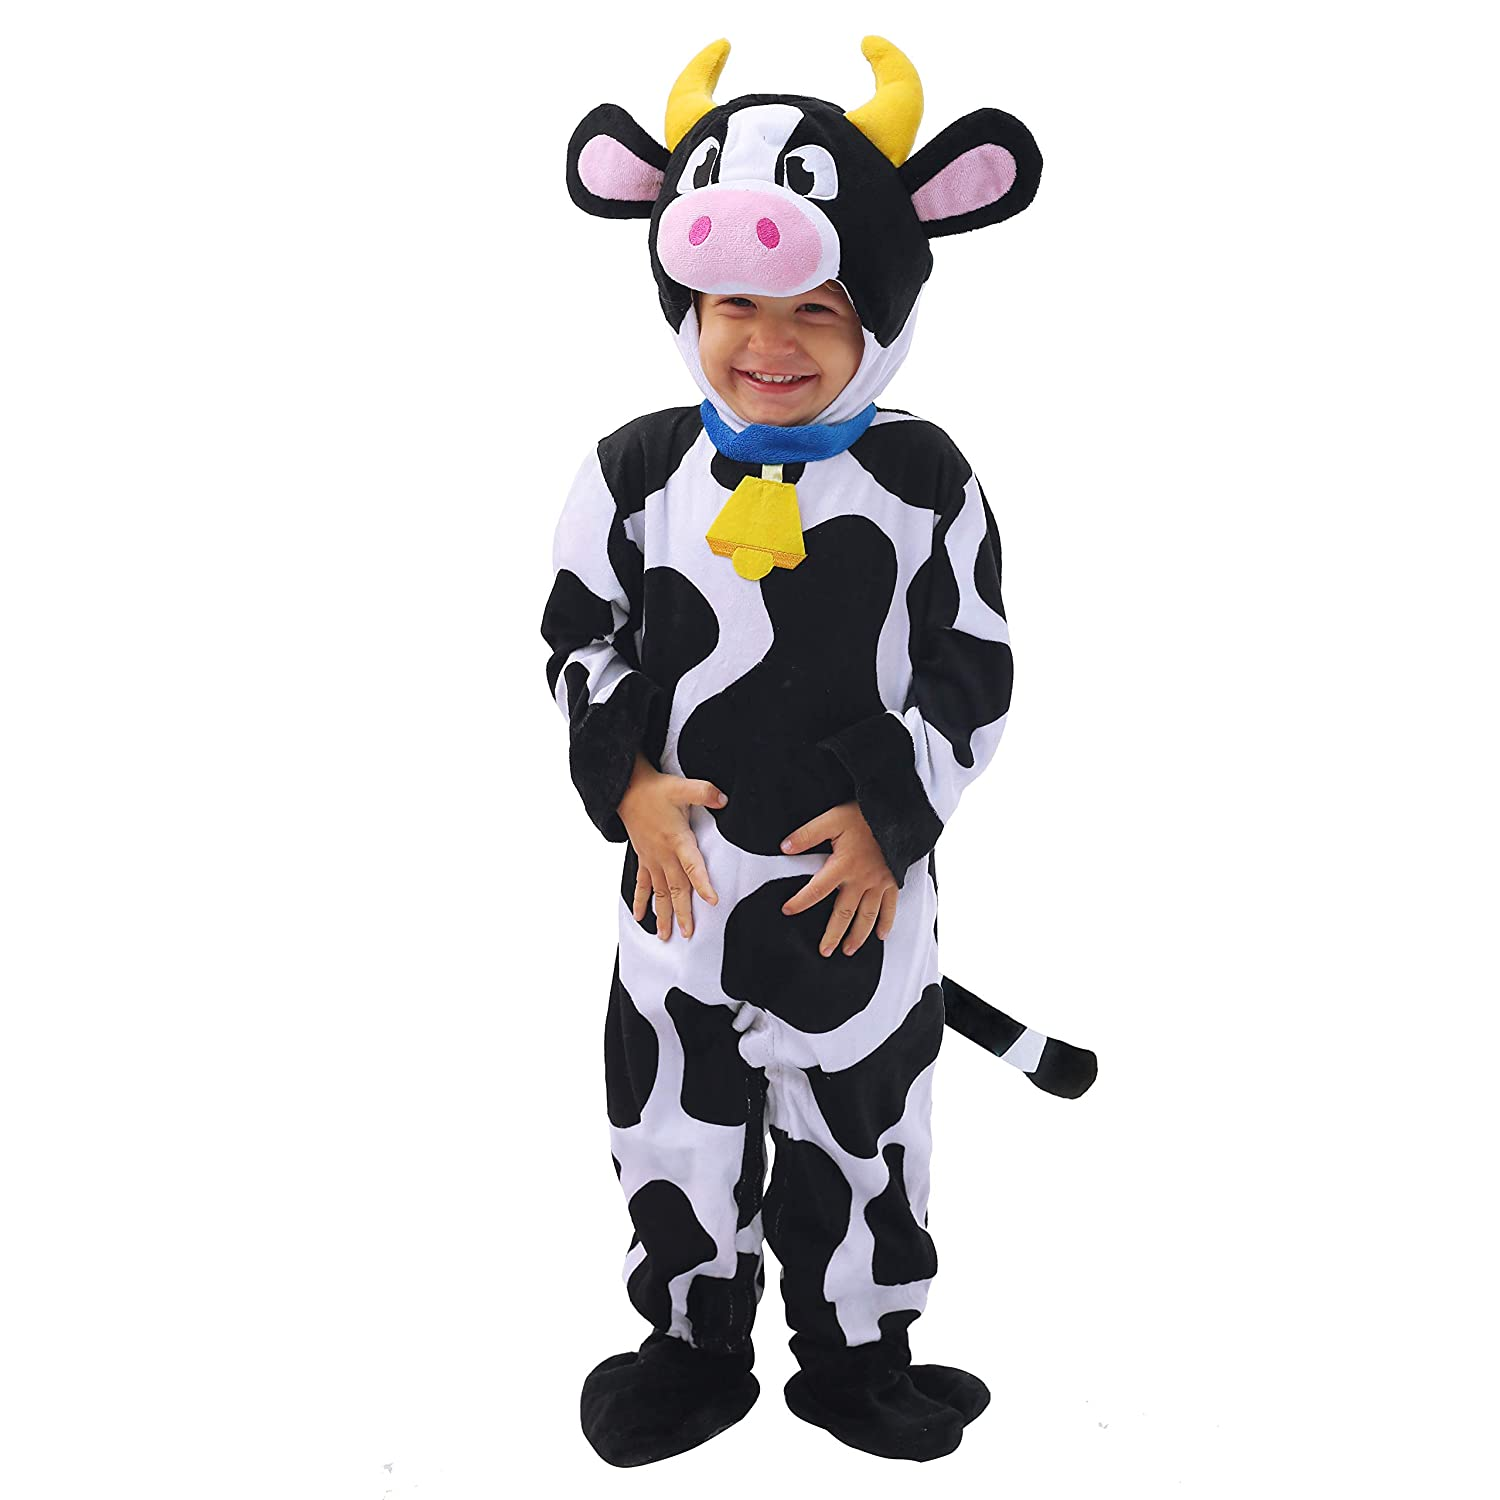 Spooktacular Creations Baby Cow Costume Lovely Deluxe Set Kids Halloween Trick Treat Farm Party Dress Up